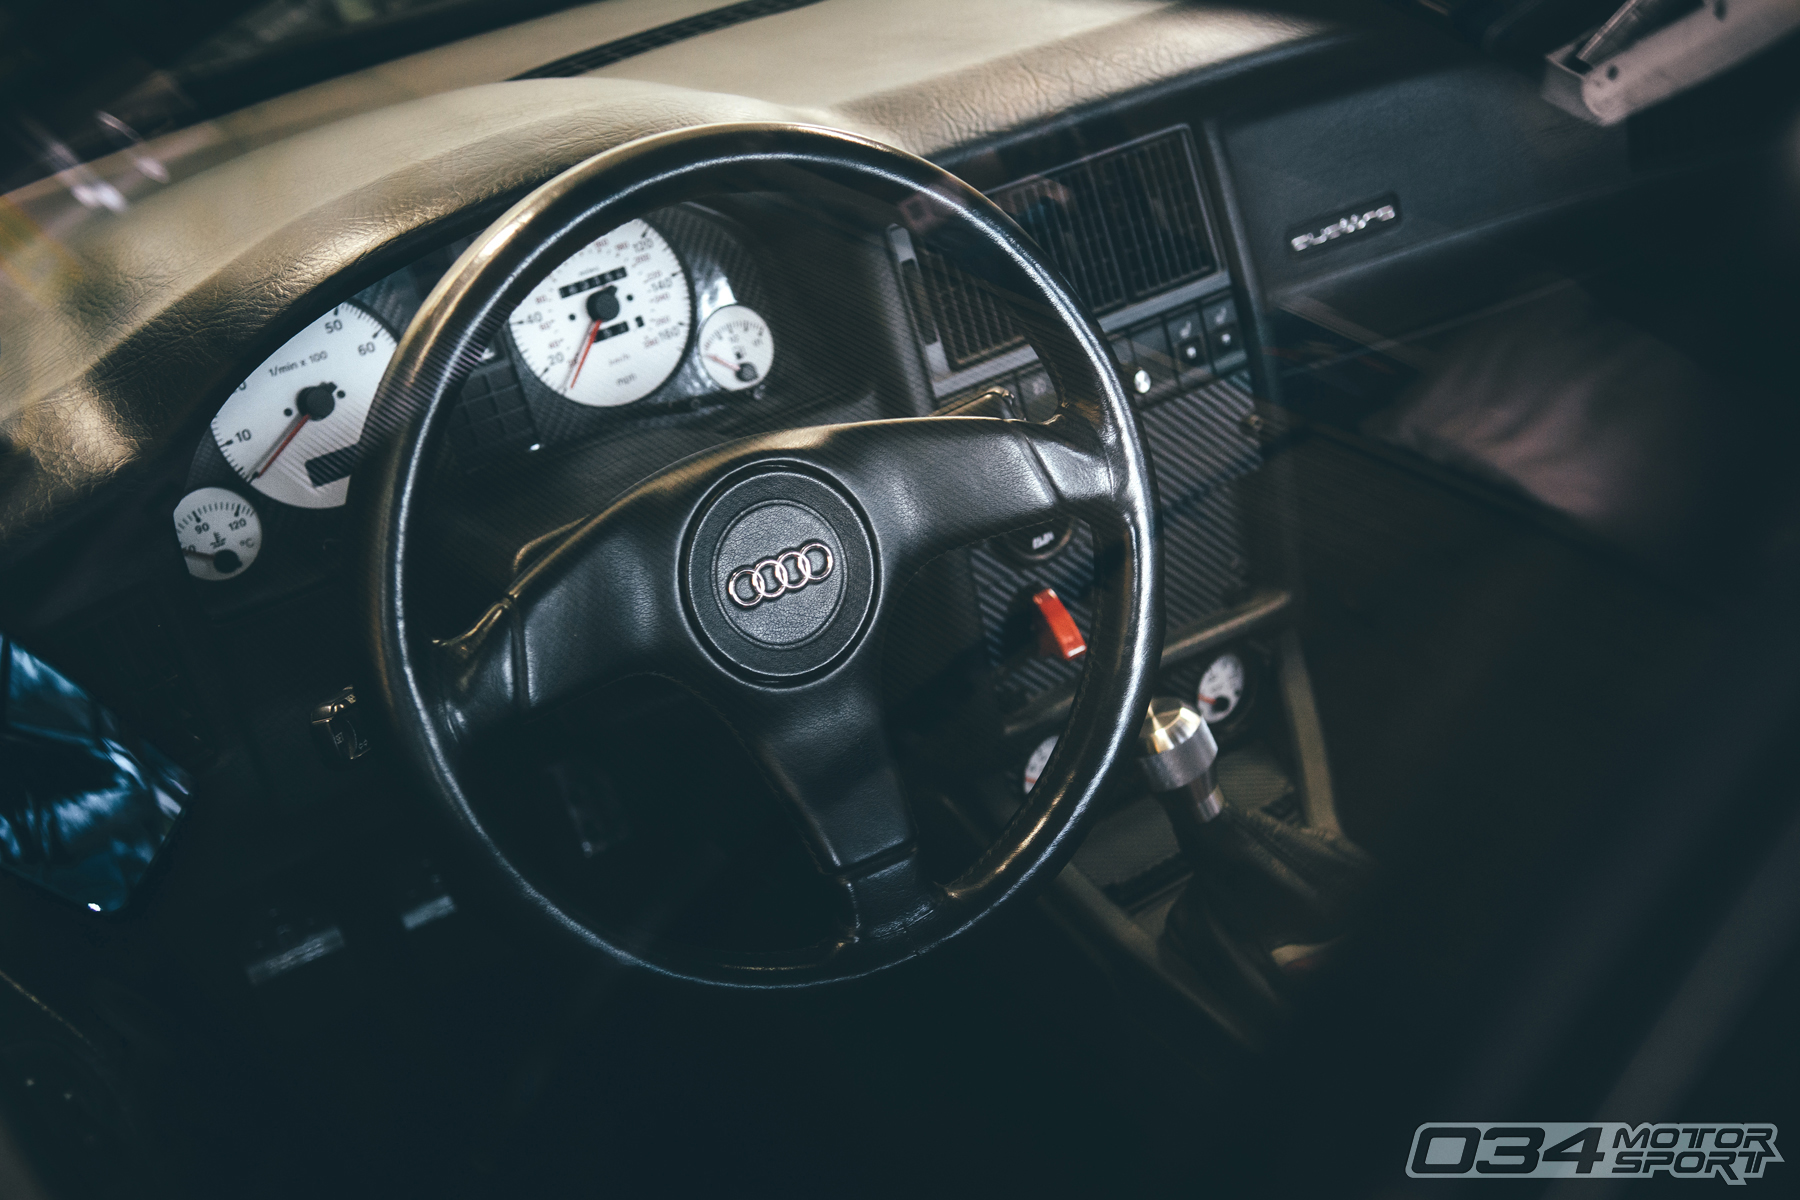 Interior of Big Turbo Audi 90 Quattro 20V